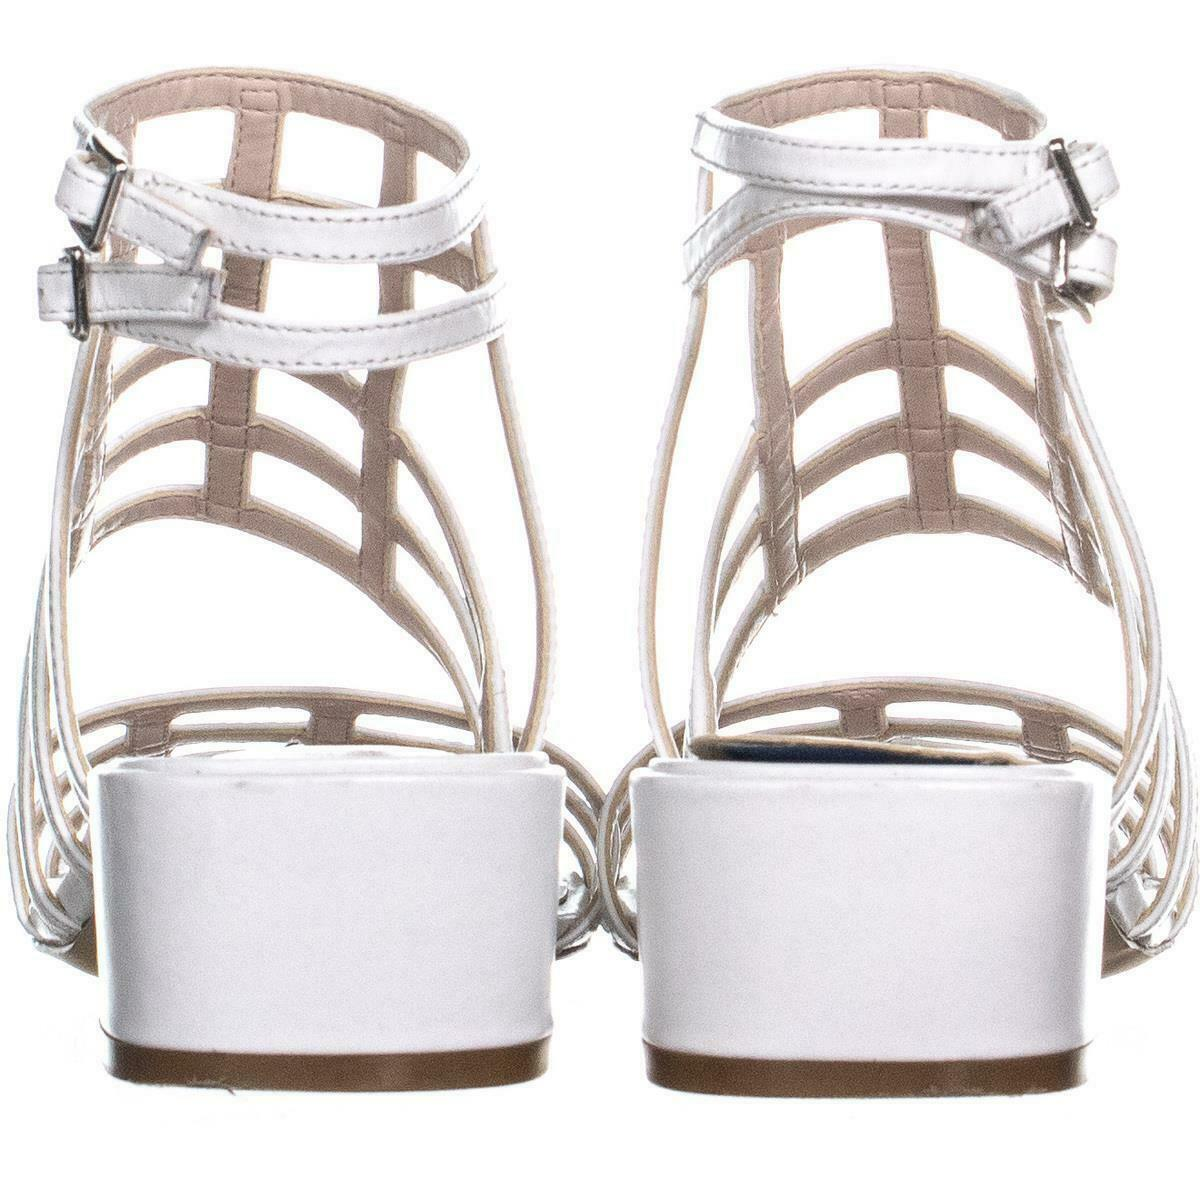 Nine West Xerxes Caged Block Heel Sandals 655, White, 5.5 US